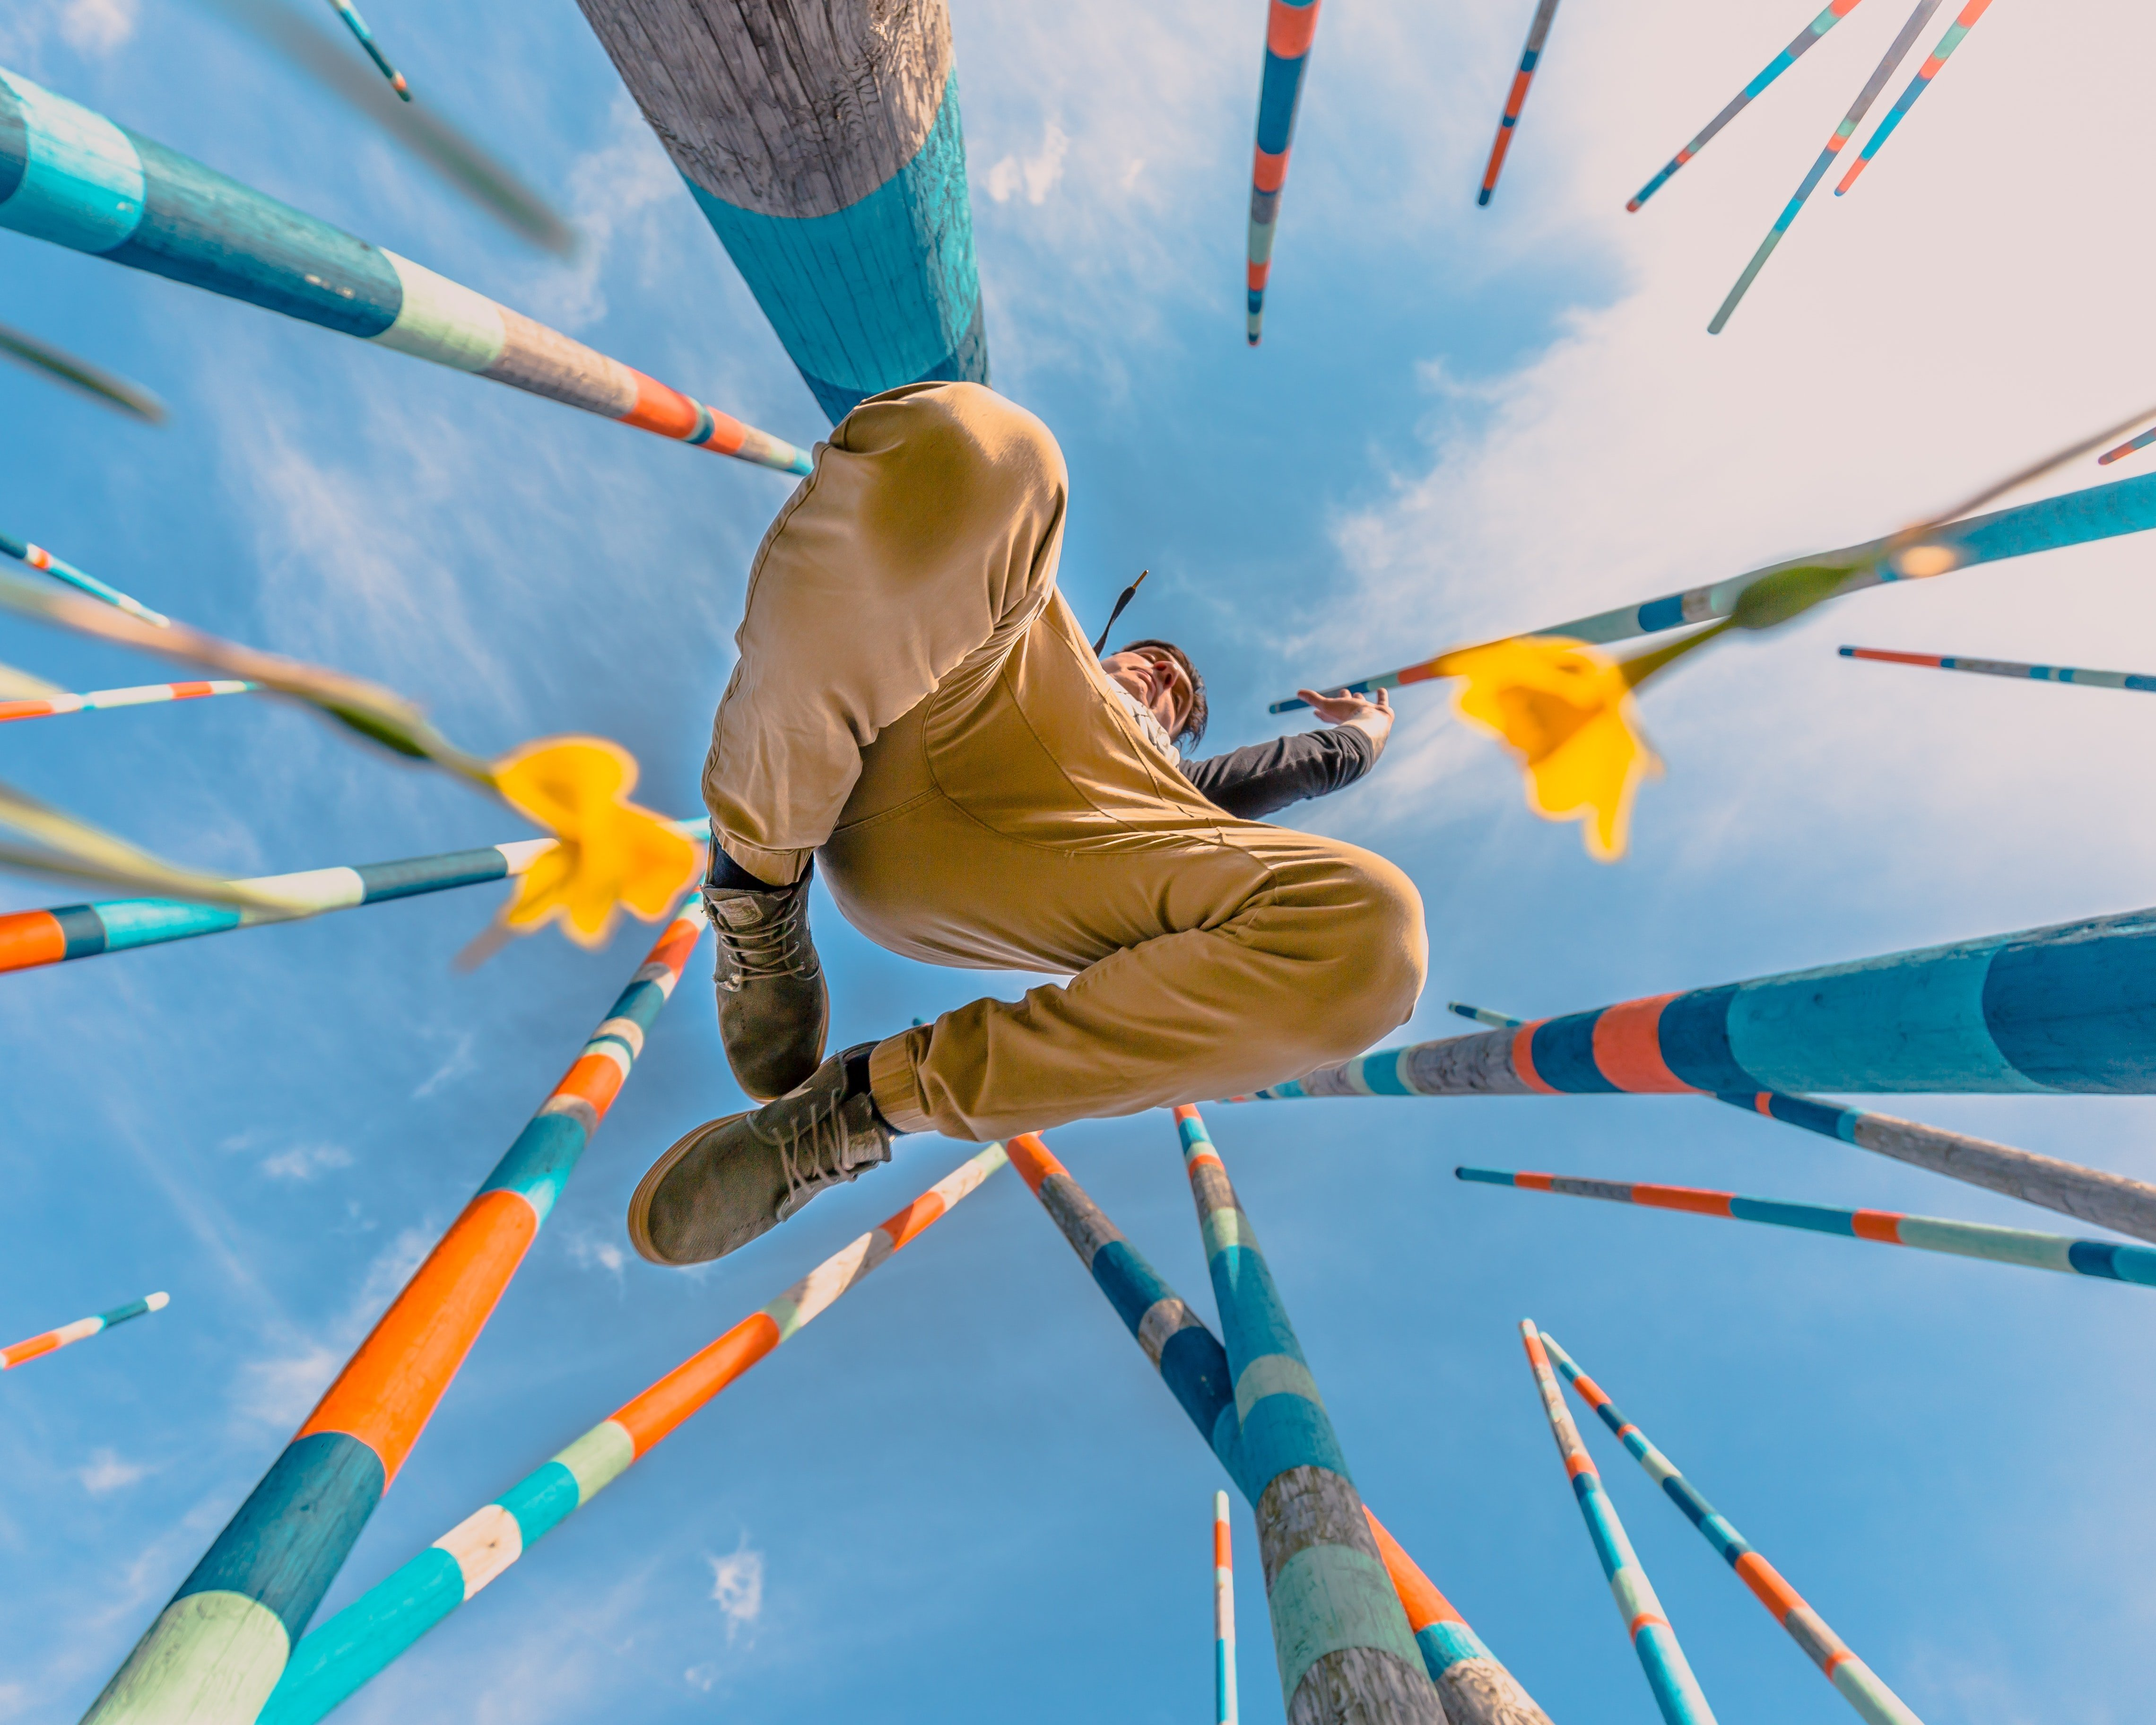 Young man jumping high in the air, with colourful sticks surrounding him